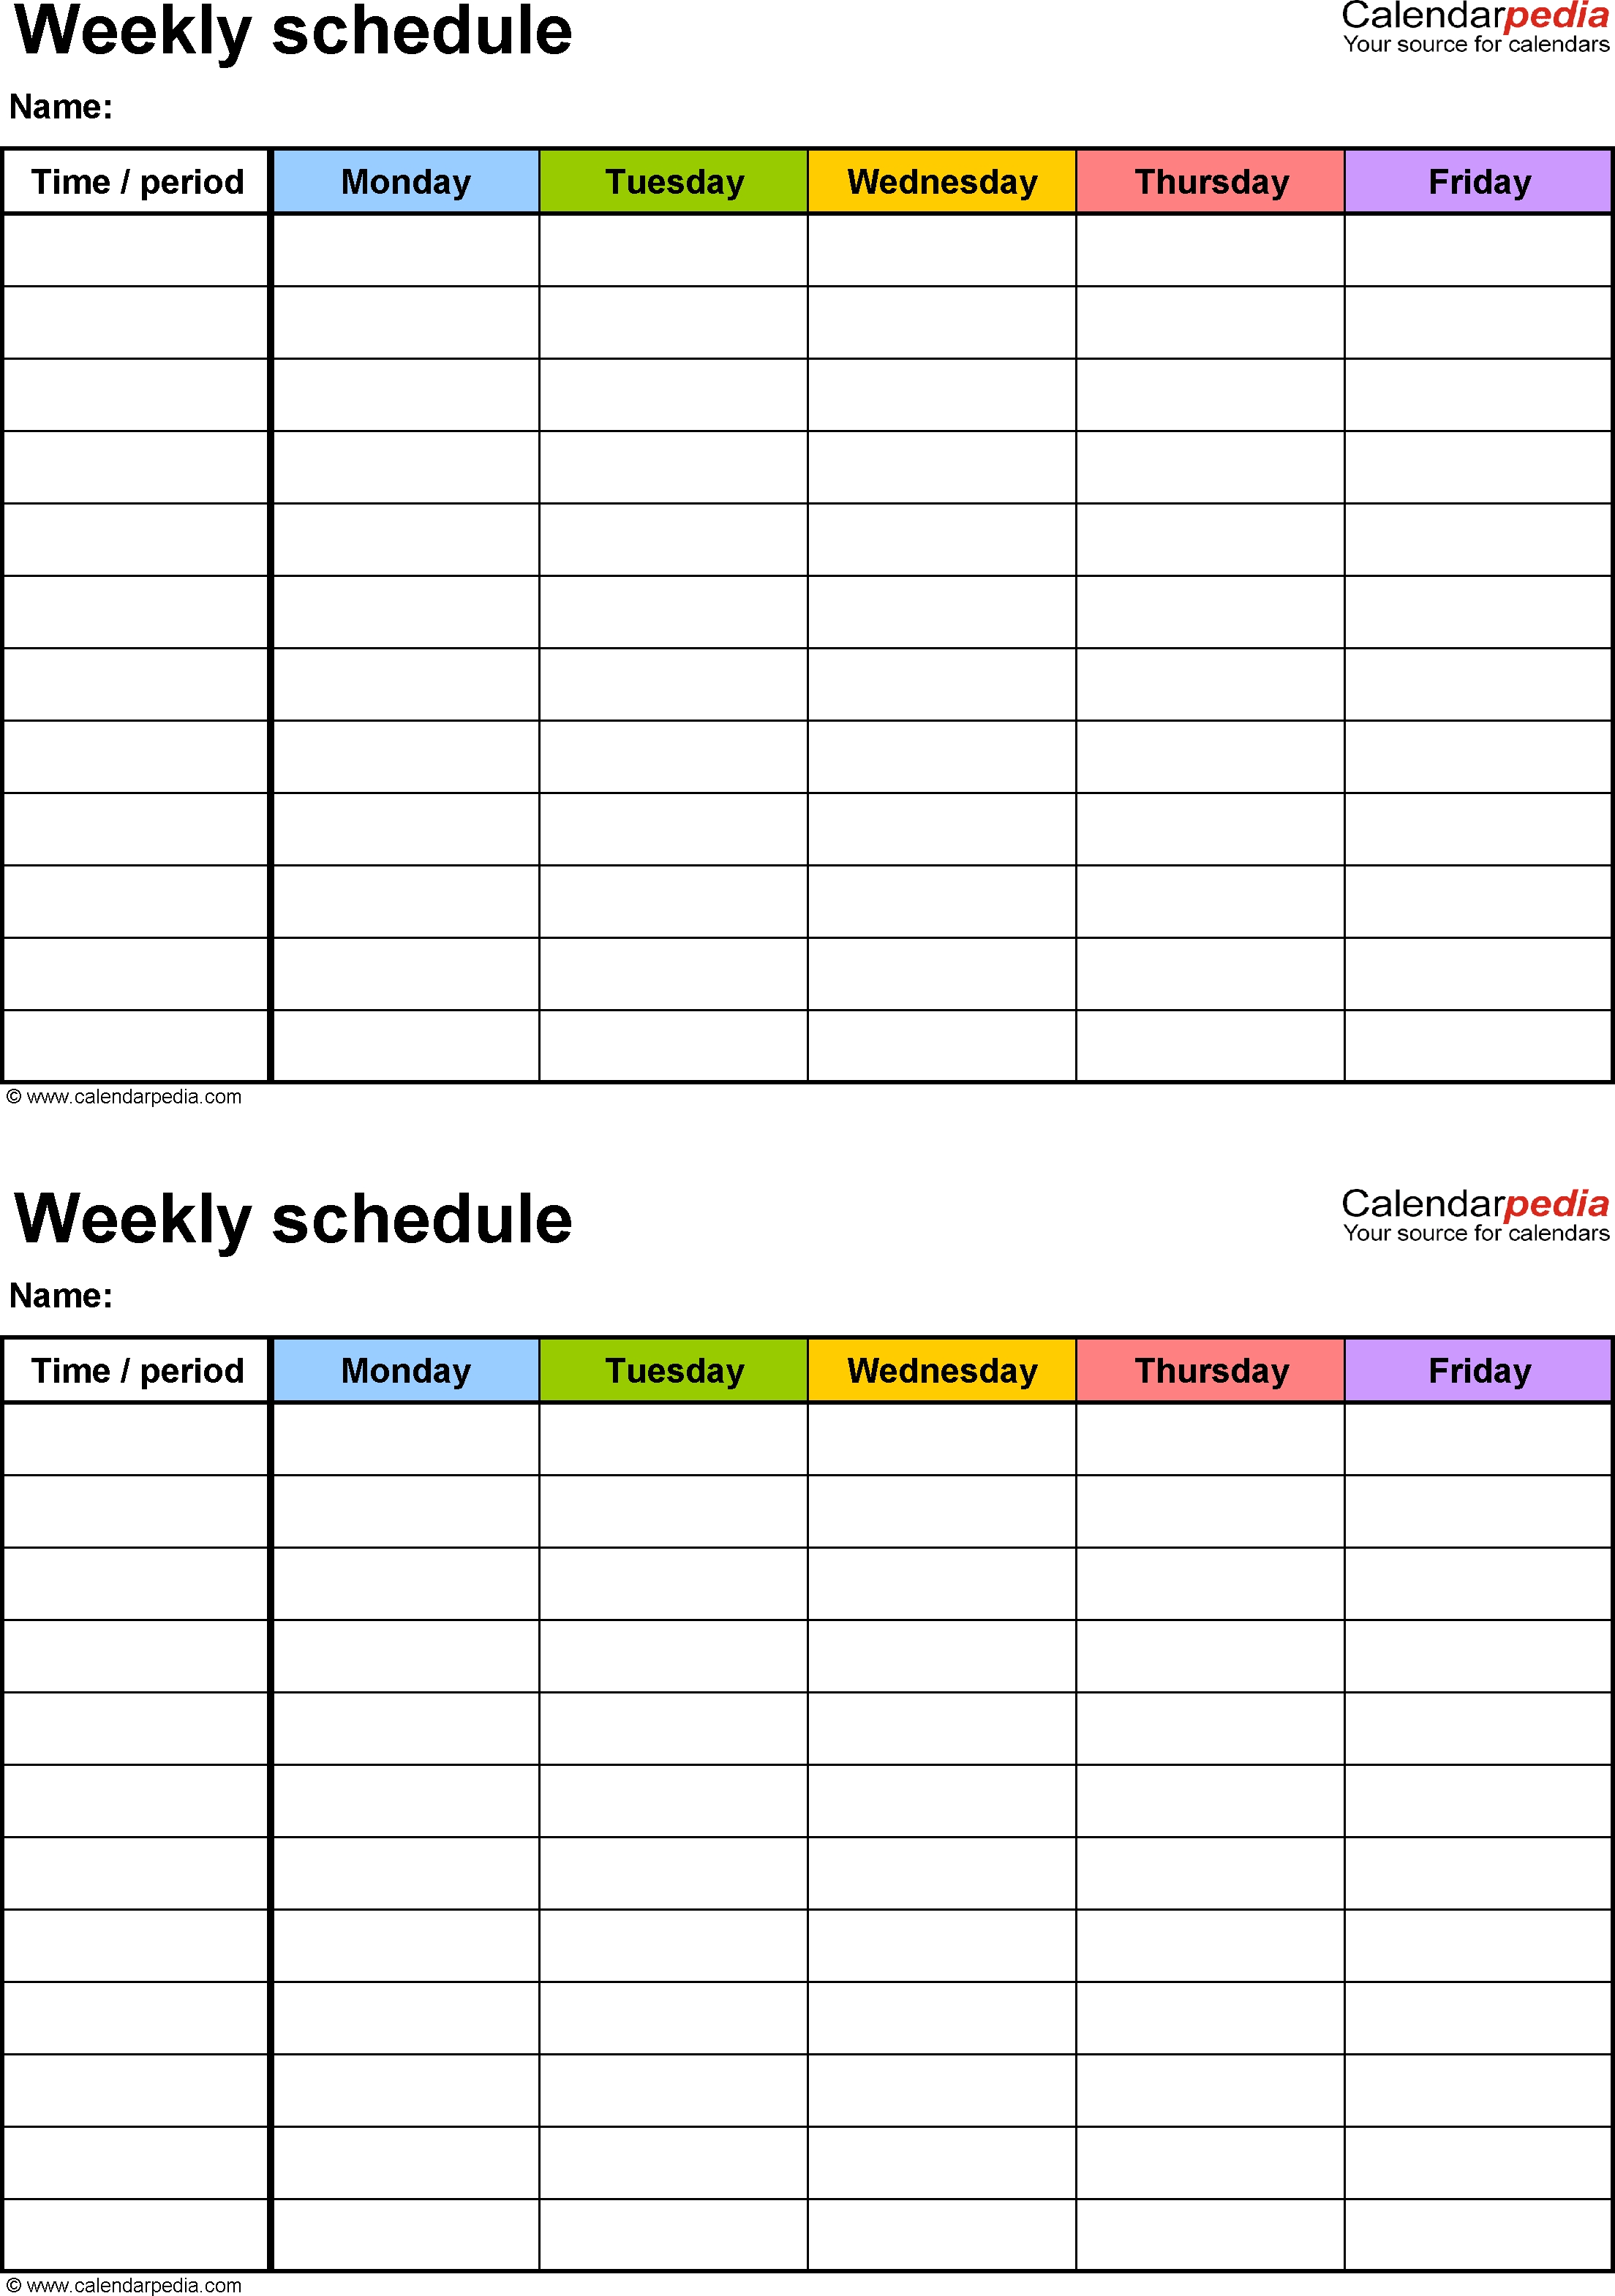 Free Weekly Schedule Templates For Word - 18 Templates for Free Printable 5 Day Calendar Pages